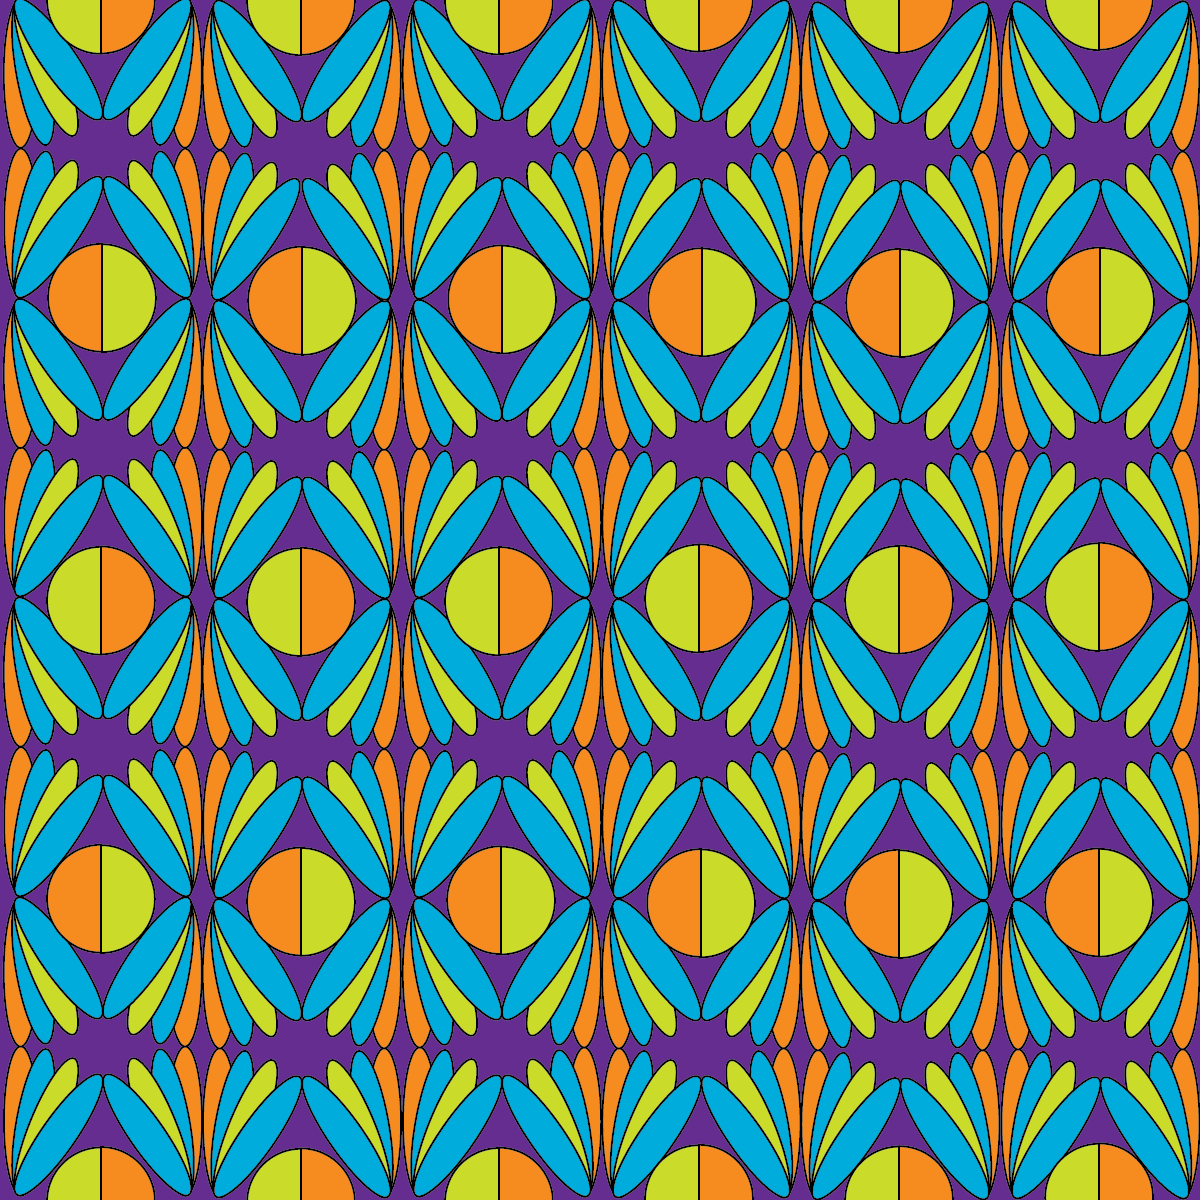 Principles Of Art Pattern : Principles of graphic art color pattern exercises